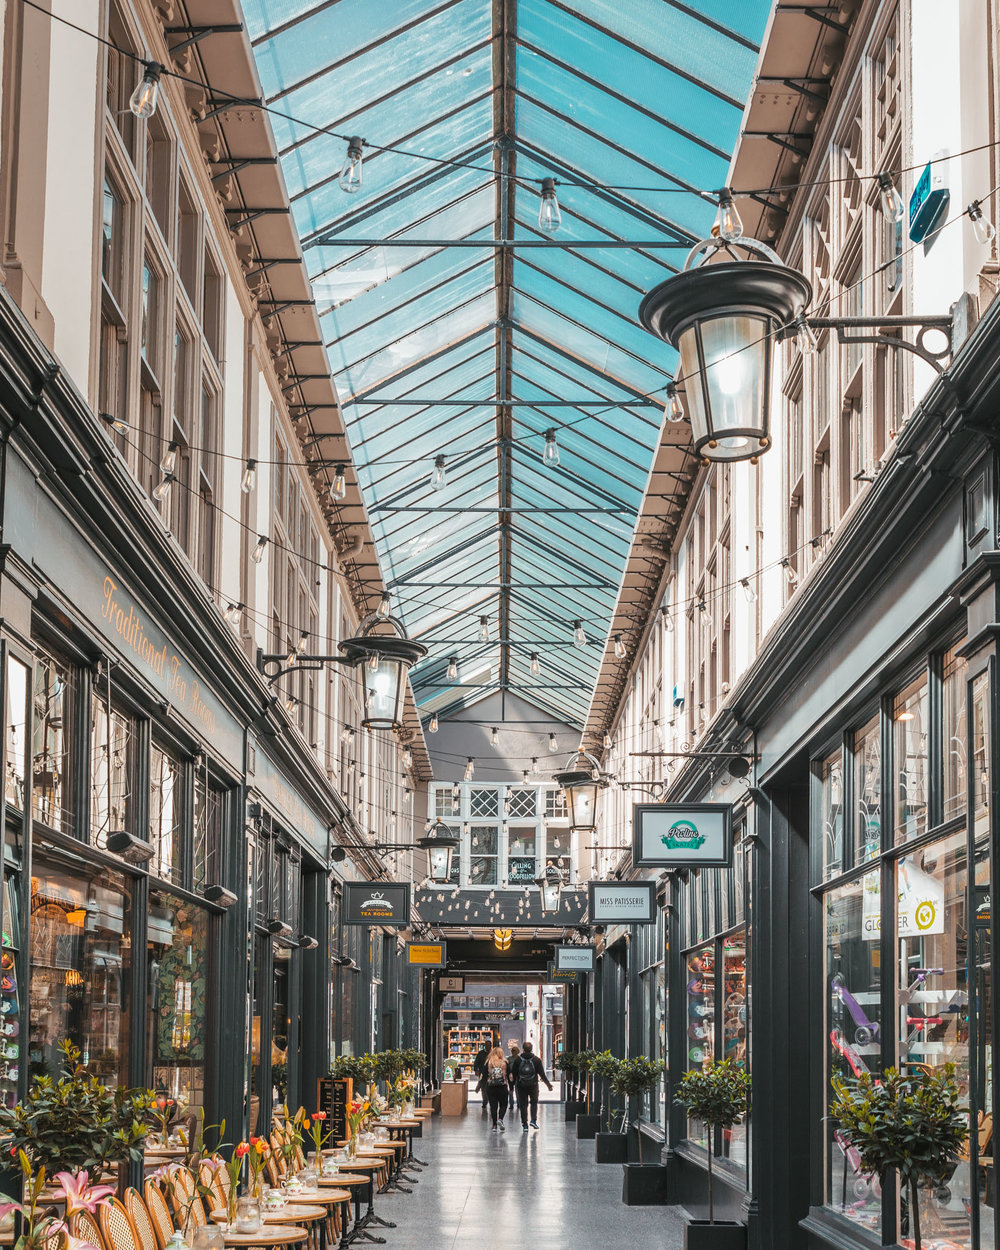 Cardiff arcade // The Most Beautiful Places to Visit in Wales // #readysetjetset #wales #uk #welsh #travel #photospots #blogpost